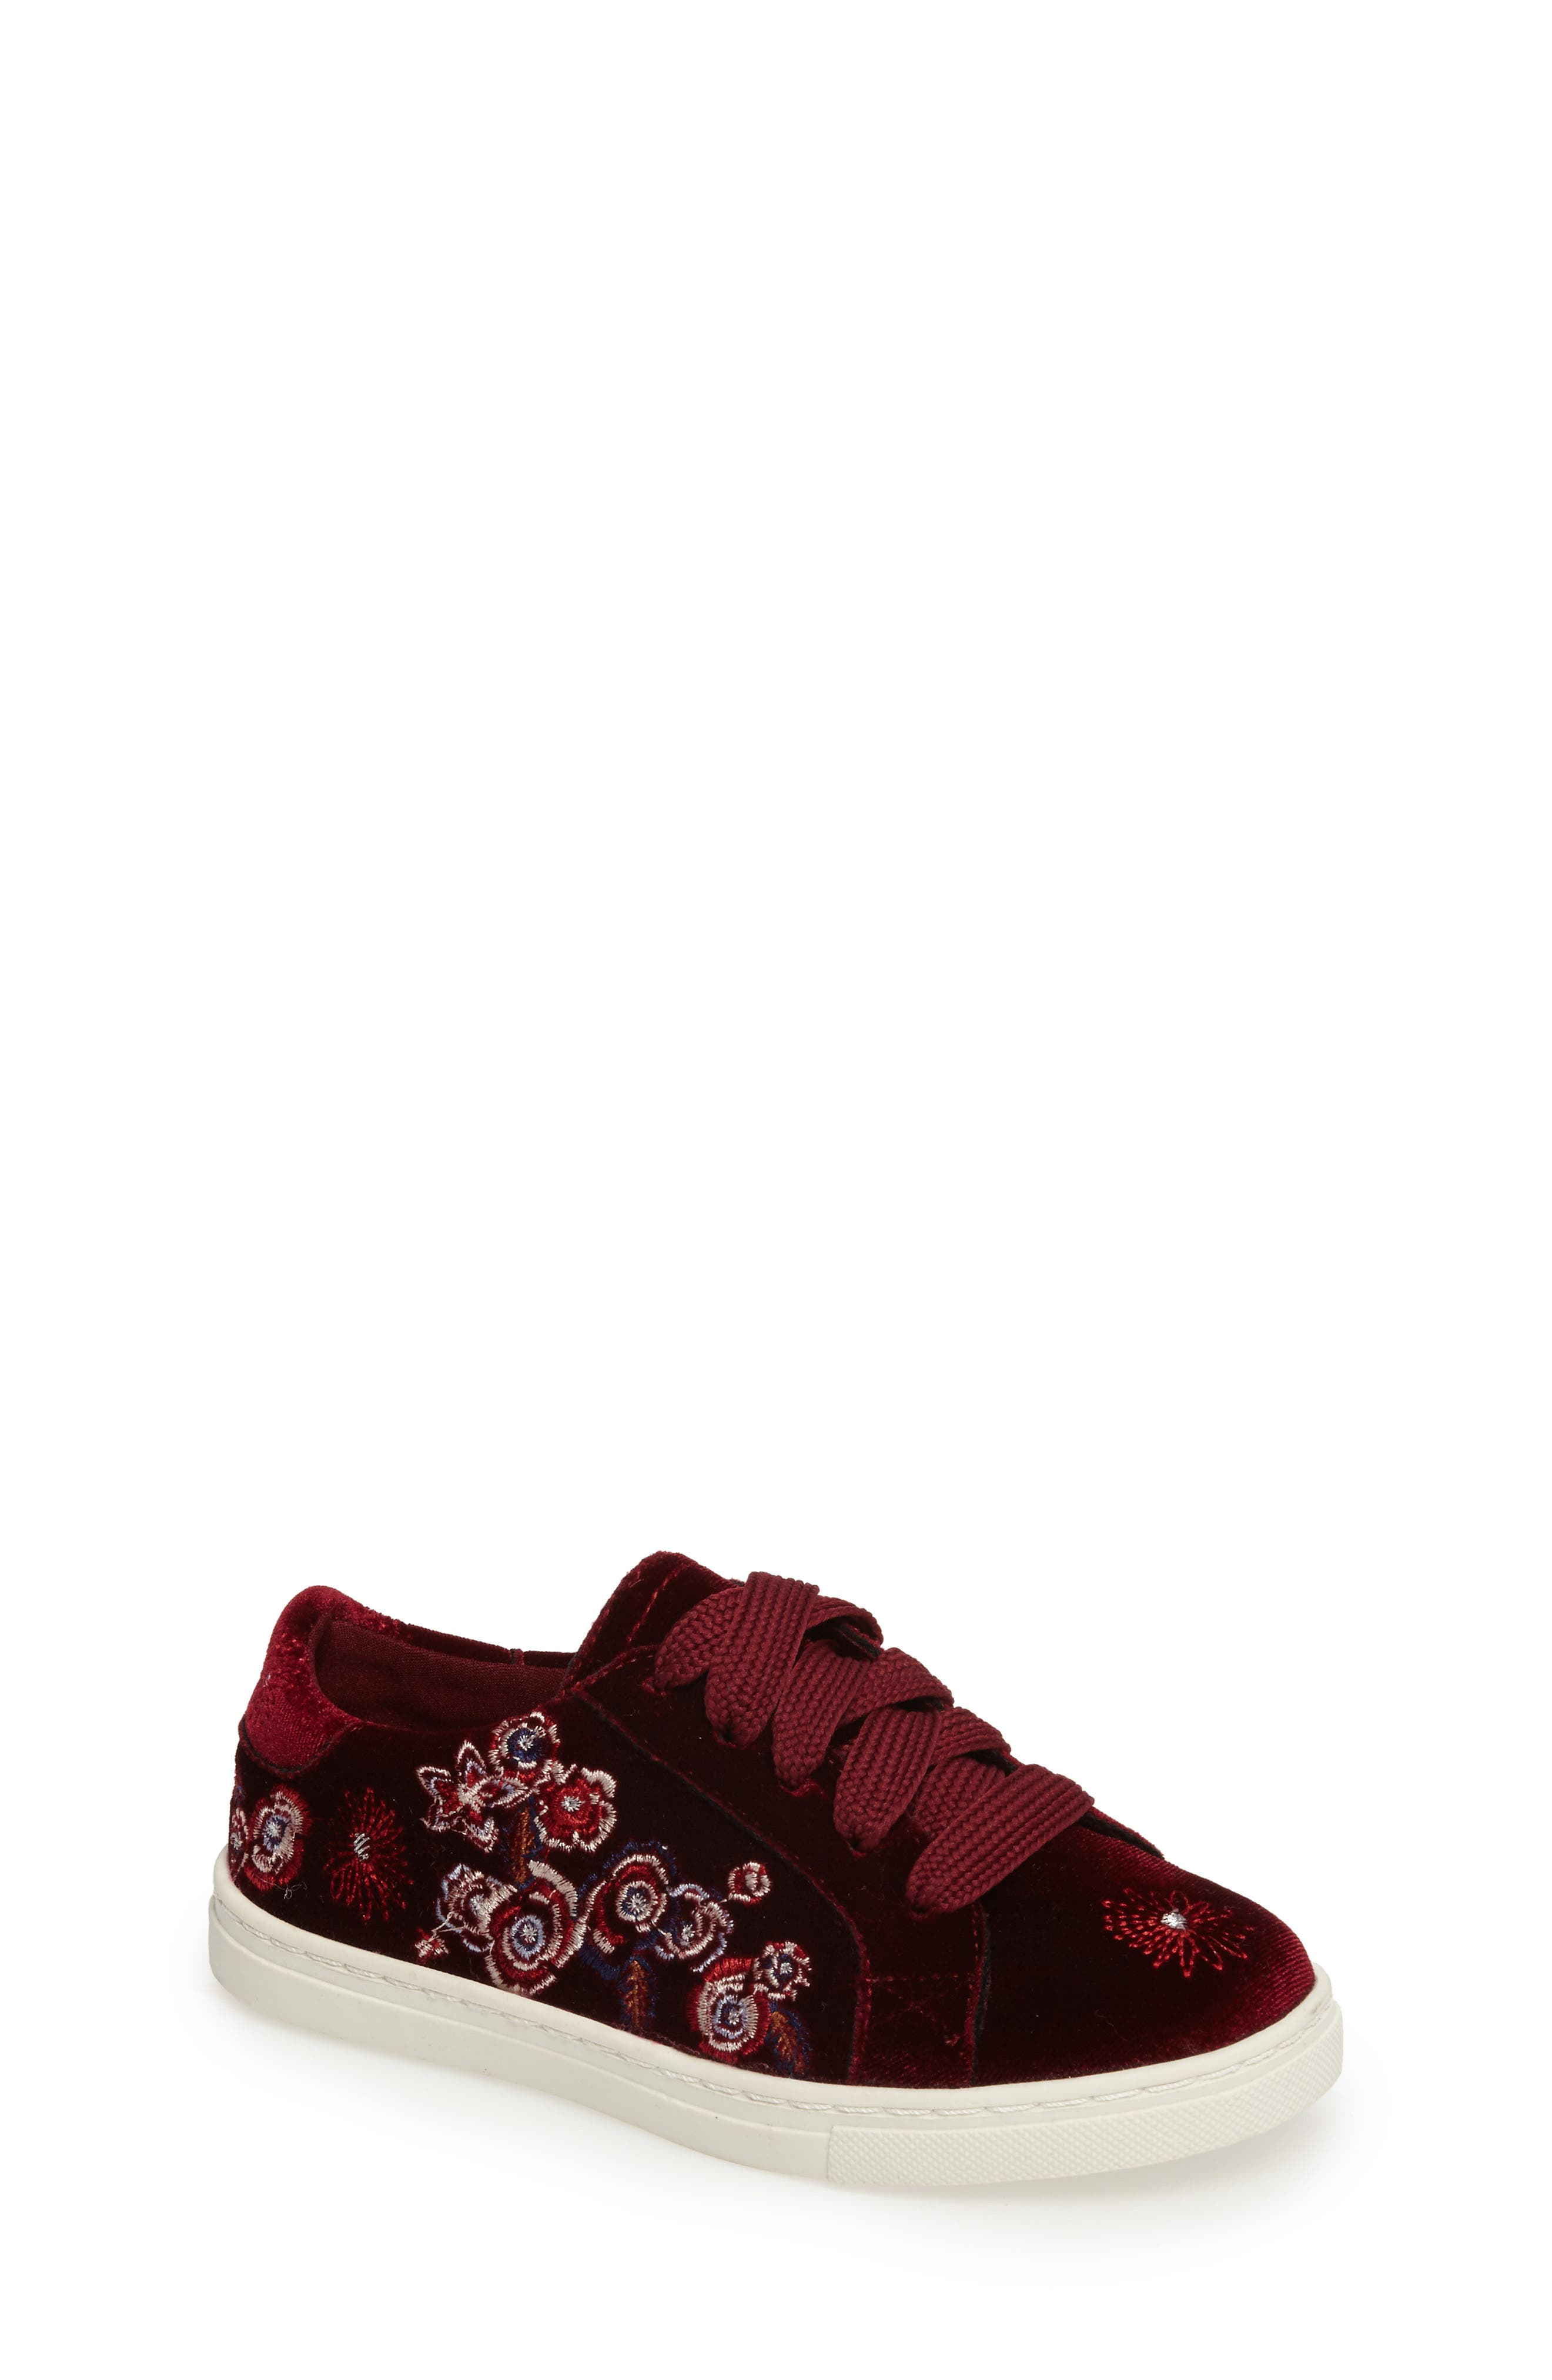 Zolly Floral Embroidered Sneaker,                             Main thumbnail 1, color,